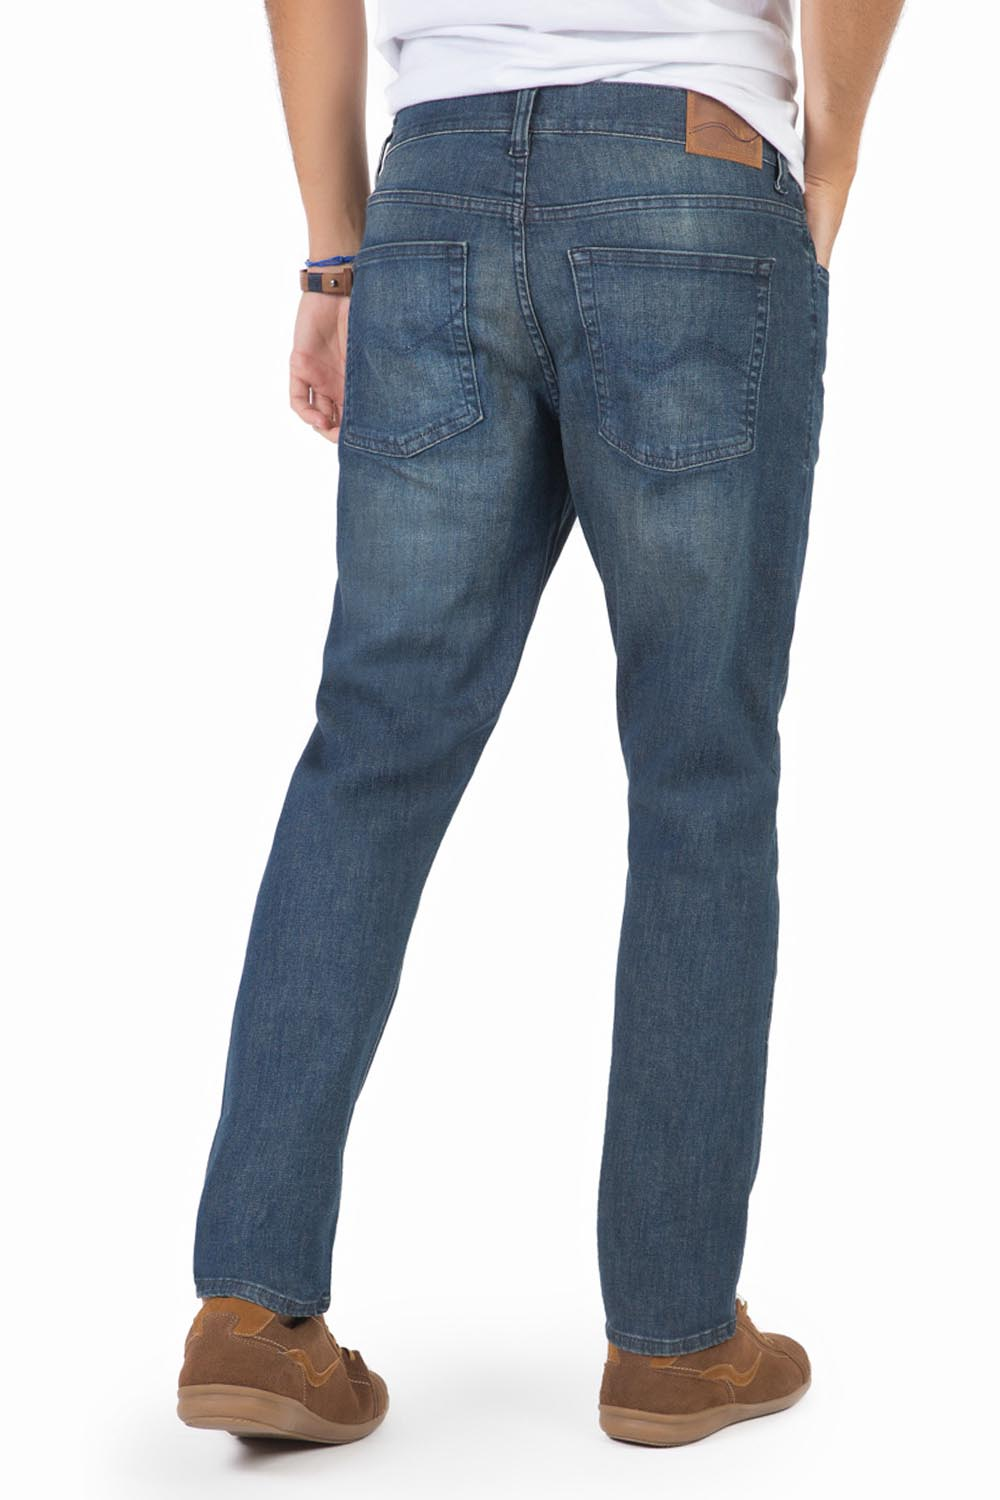 8ad45371e Calça Jeans Slim Destroyer - Taco